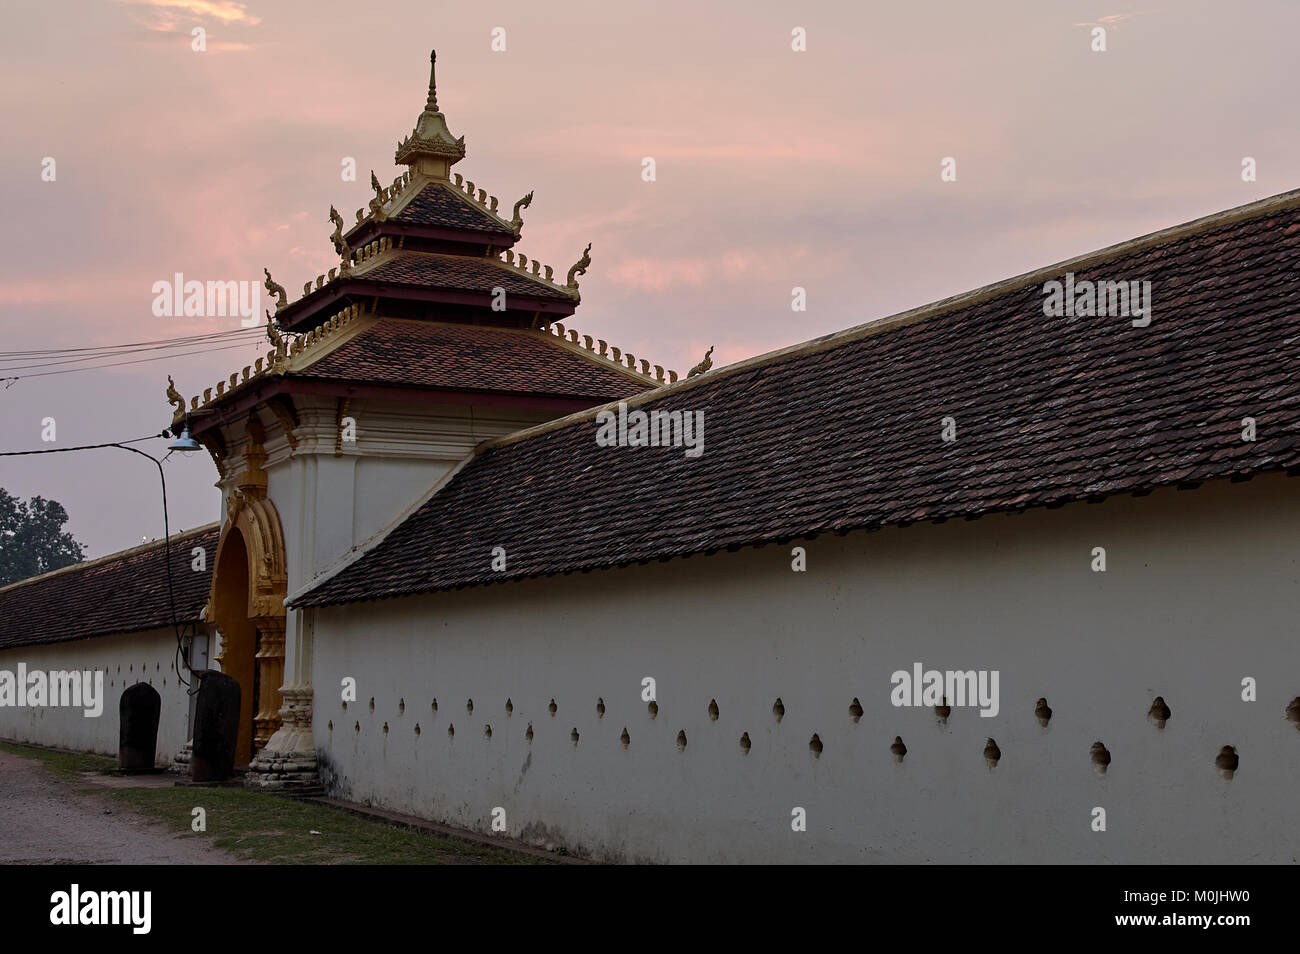 Images of Pha That Luang - Stock Image